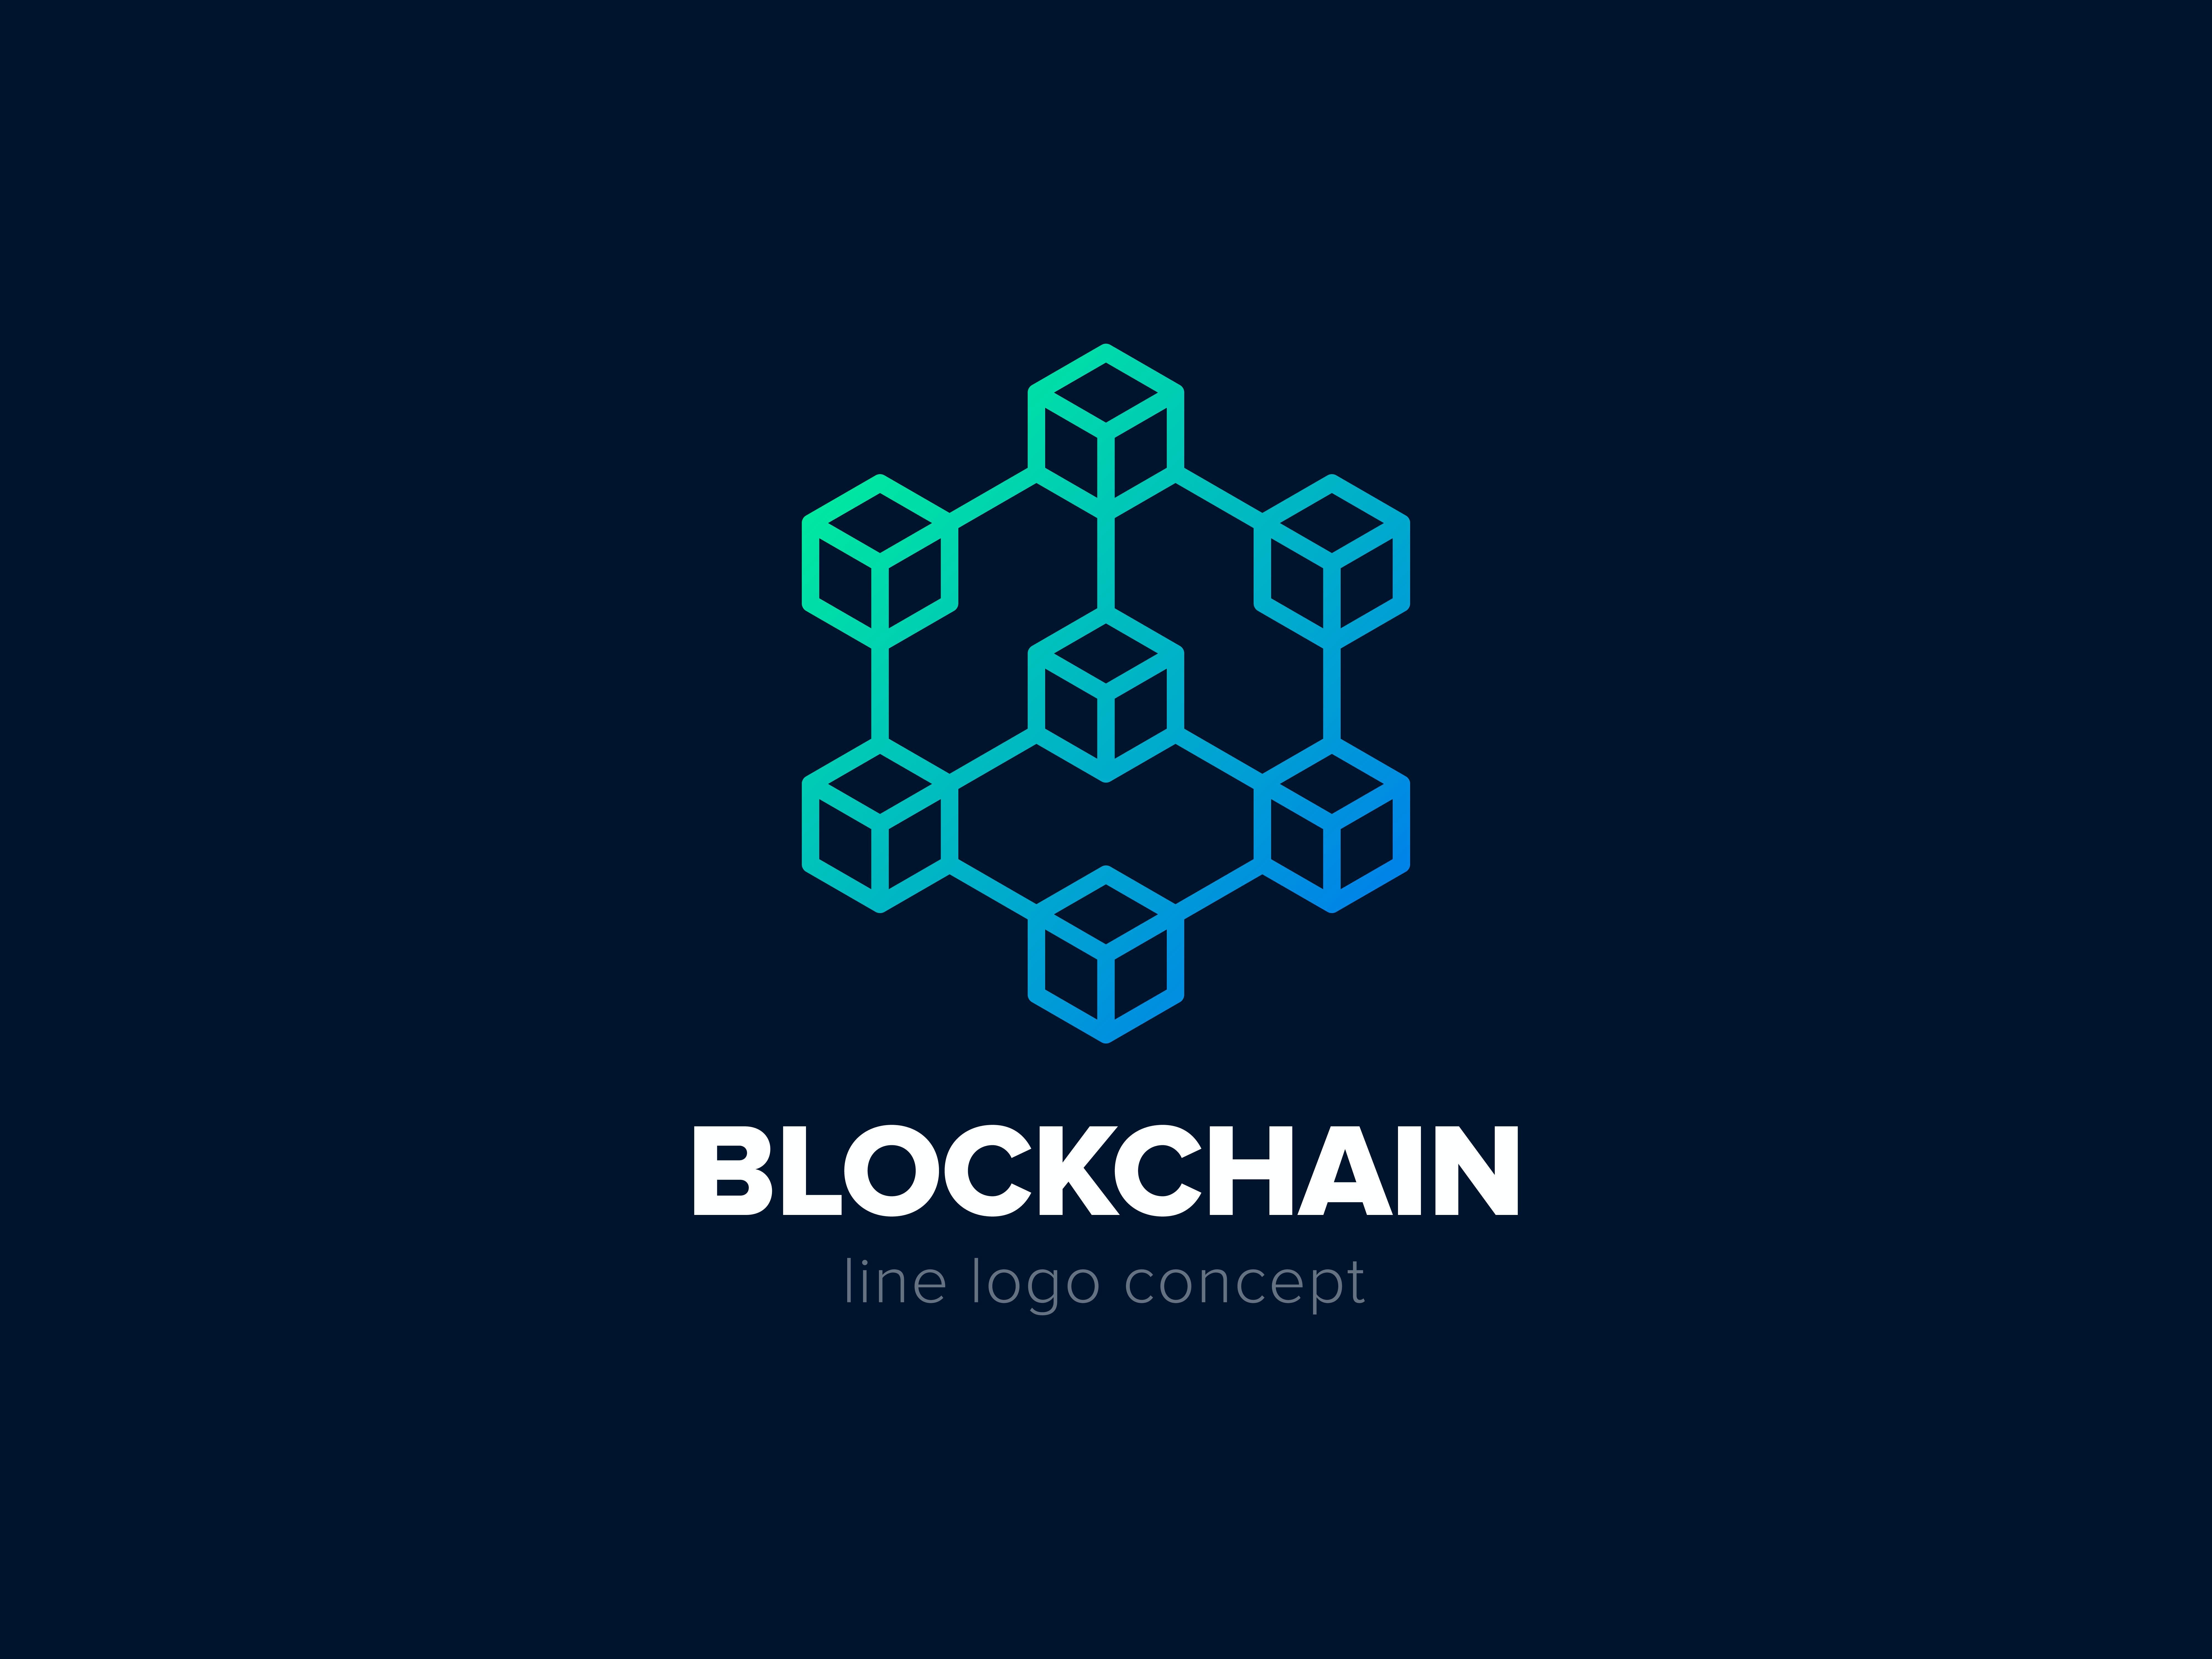 Blockchain Training in Lucerne for Beginners starting January 12, 2019-Bitcoin training-introduction to cryptocurrency-ico-ethereum-hyperledger-smart contracts training | January 12 - January 26, 2019